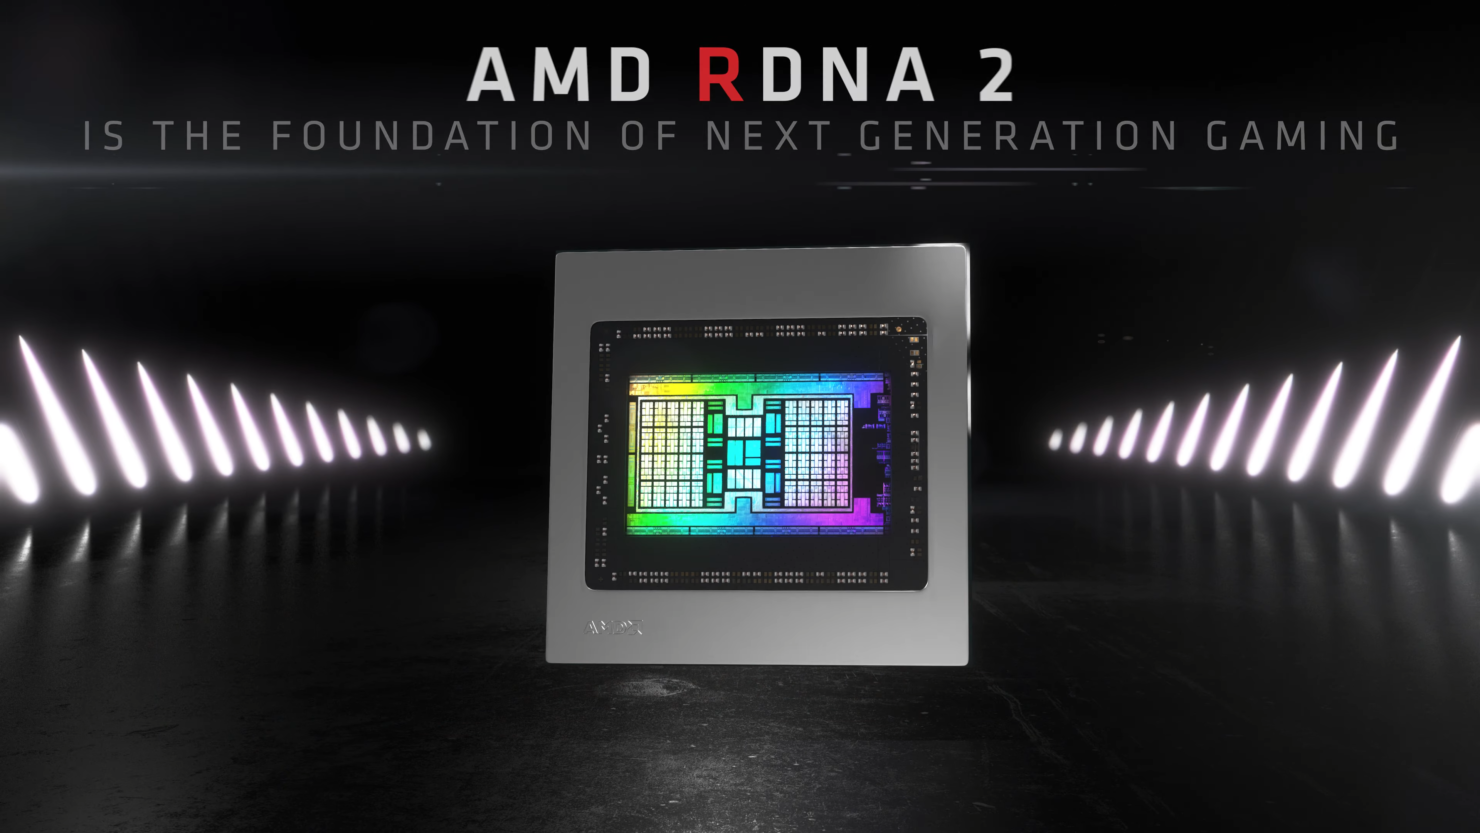 amd-confirms-that-fidelityfx-super-resolution-'fsr',-its-nvidia-dlss-competitor,-will-launch-this-year-for-rdna-2-powered-gaming-pcs